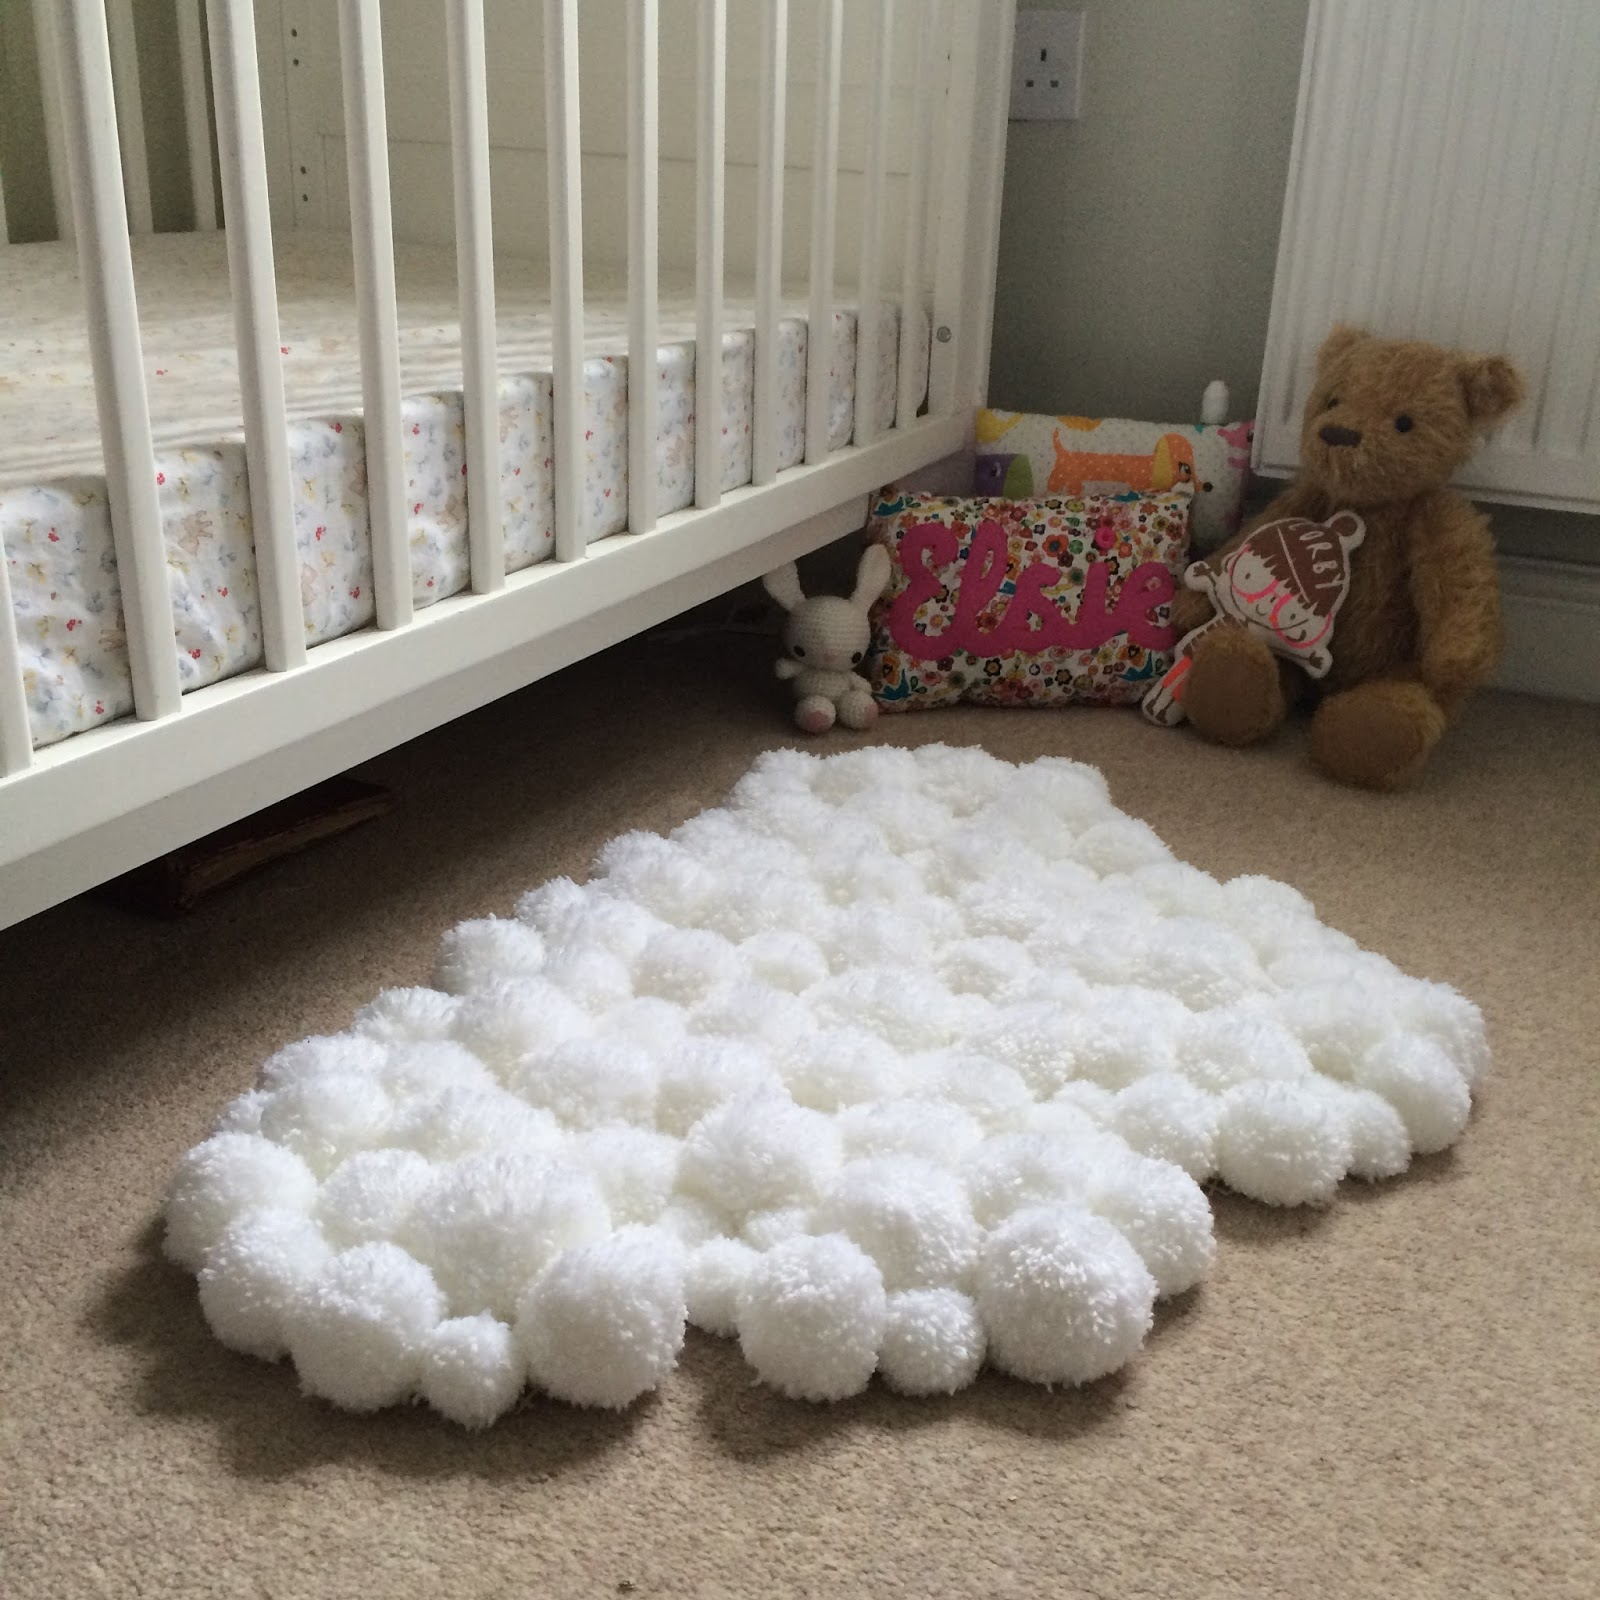 This Is My The Cloud Rug In Daughters Room I Love Texture Provides Not Only Does It Look Good Excellent Sensory Stimulation Too